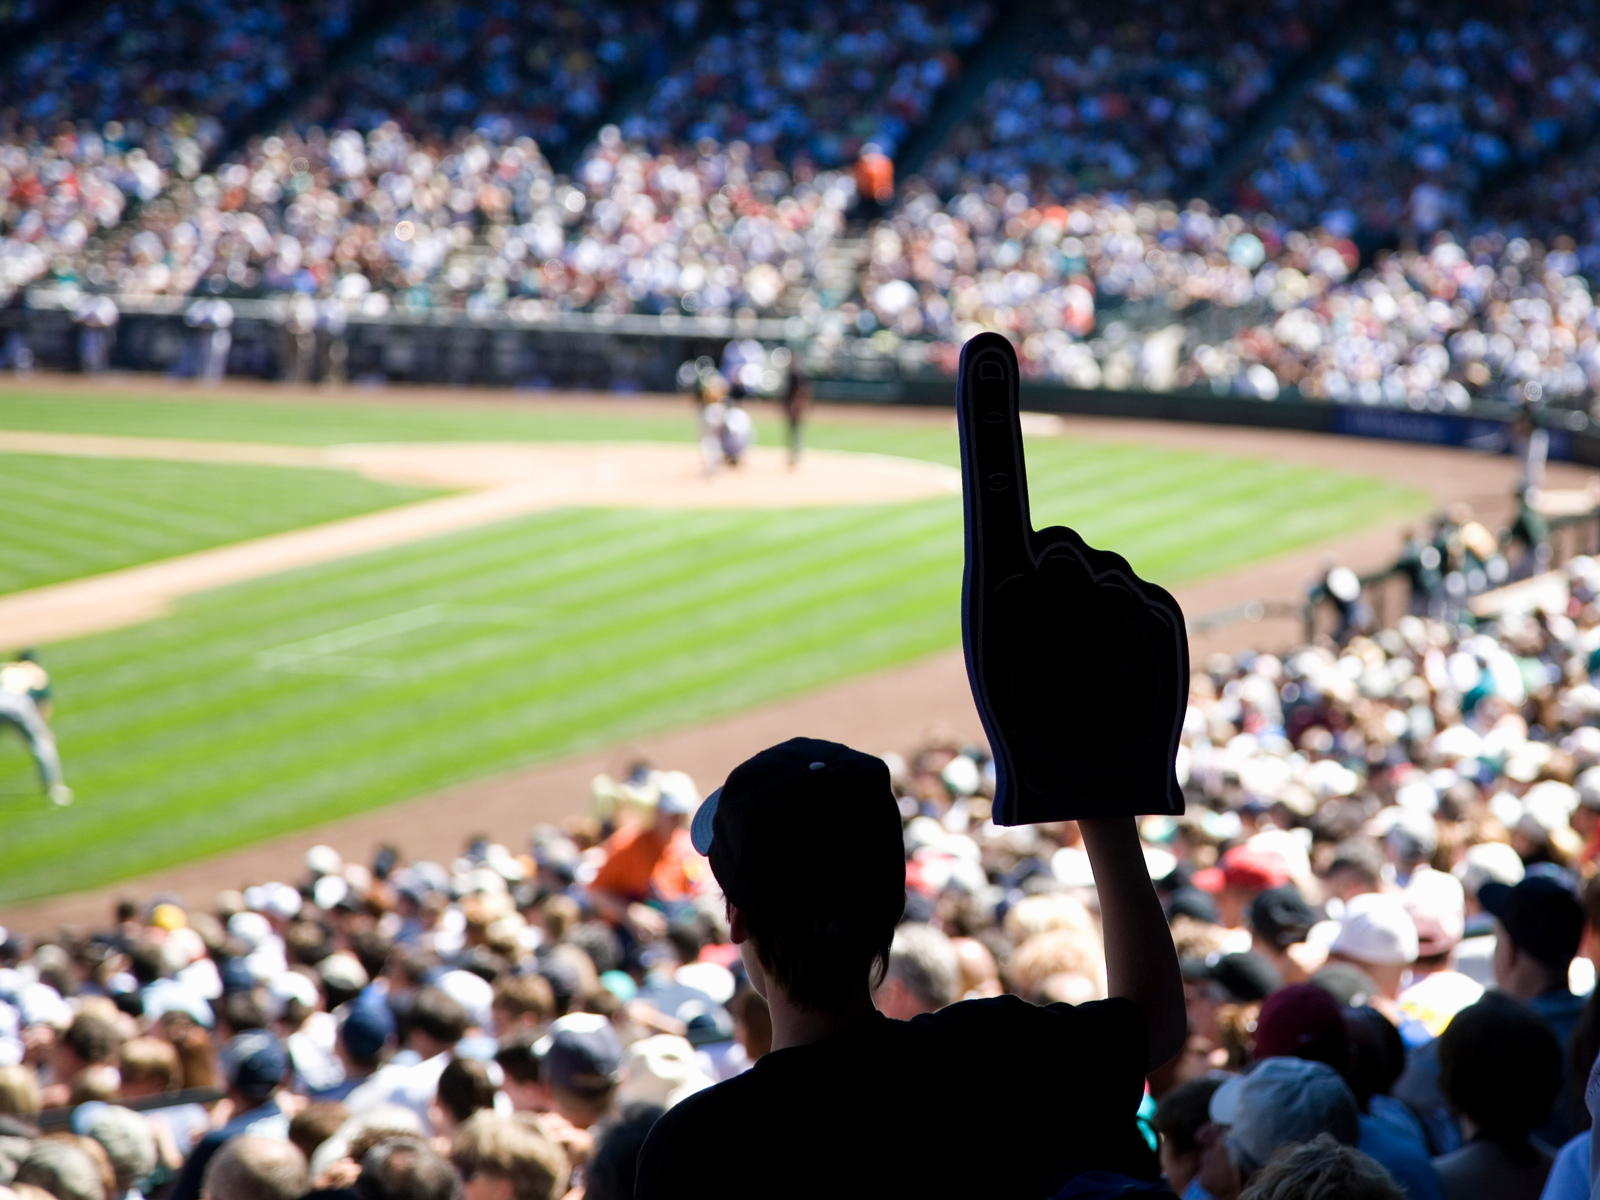 This MLB Ballpark Is the Most Vegan-Friendly, According to PETA